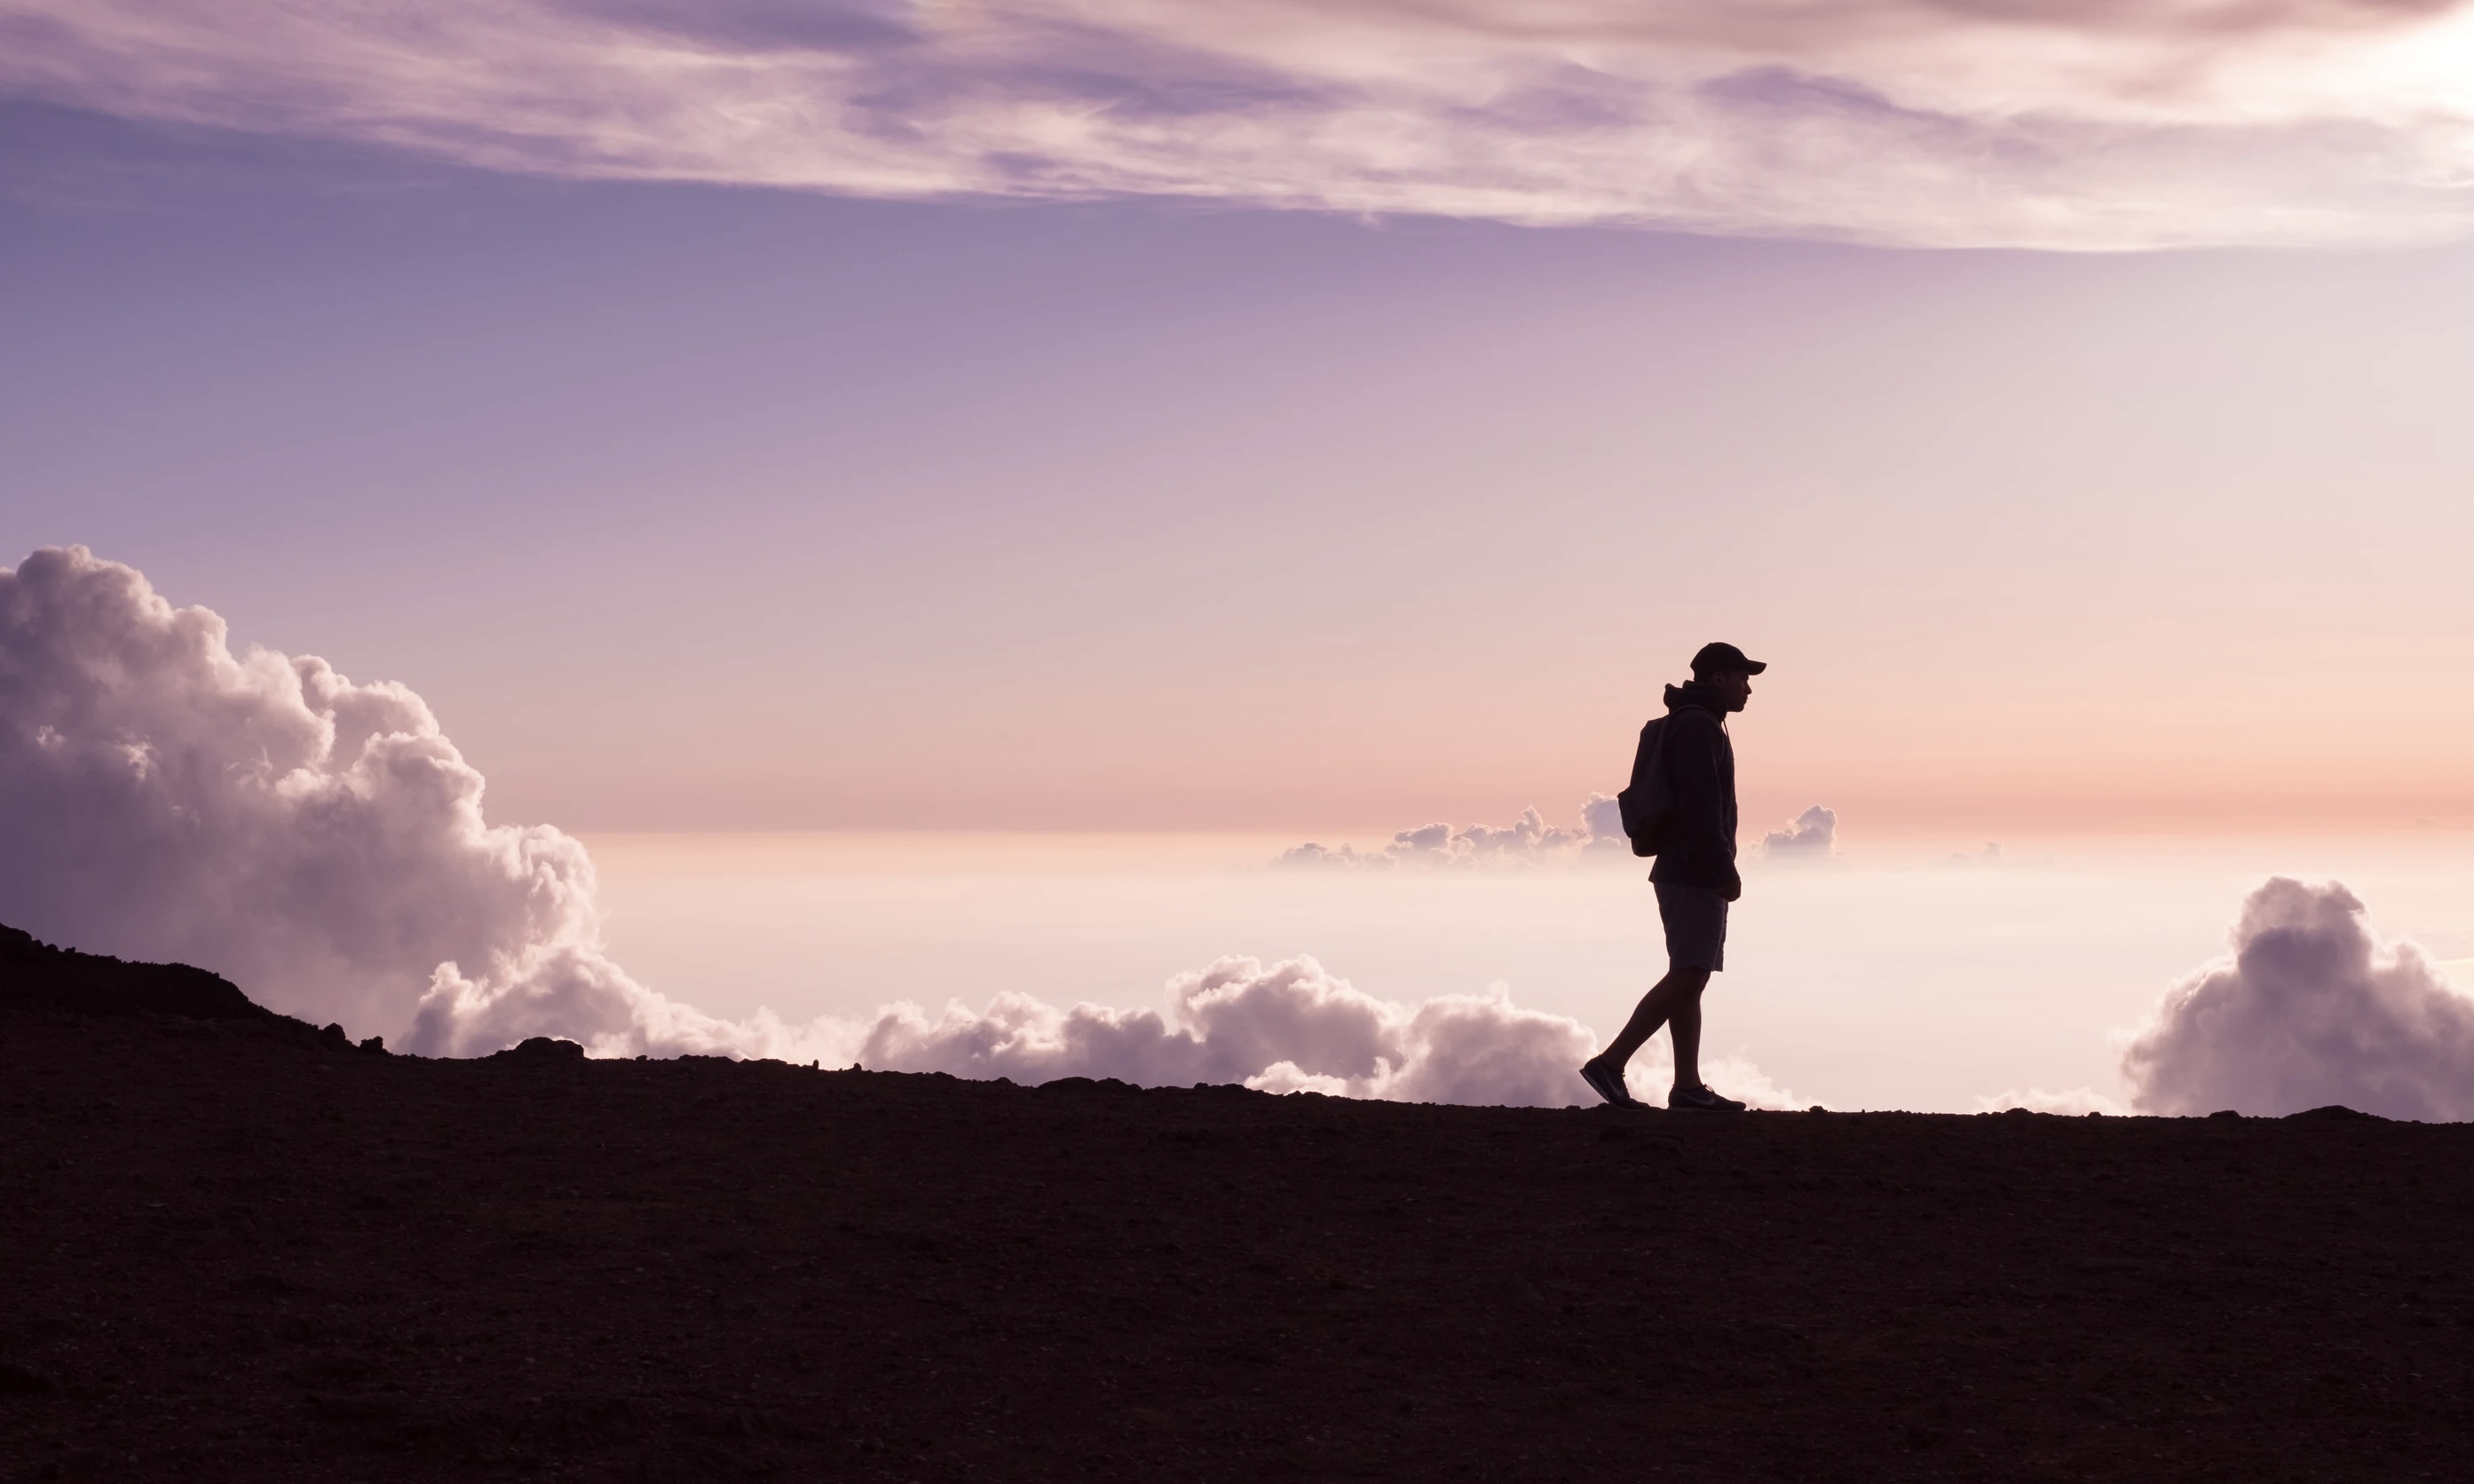 Silhouette of Man Walking in Front of Clouds